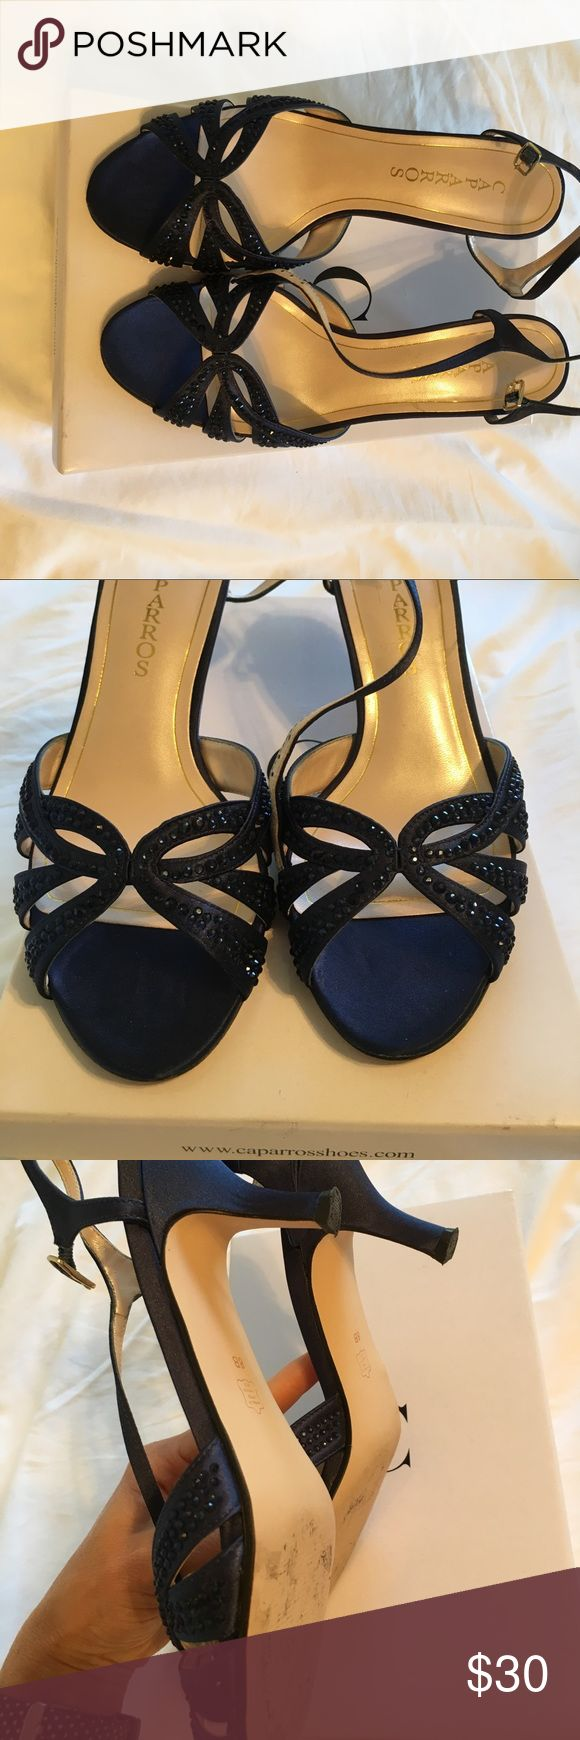 Caparros Heirloom navy blue satin dress sandal Worn once for a wedding, EUC , taken off right after ceremony. Caparros Shoes Sandals